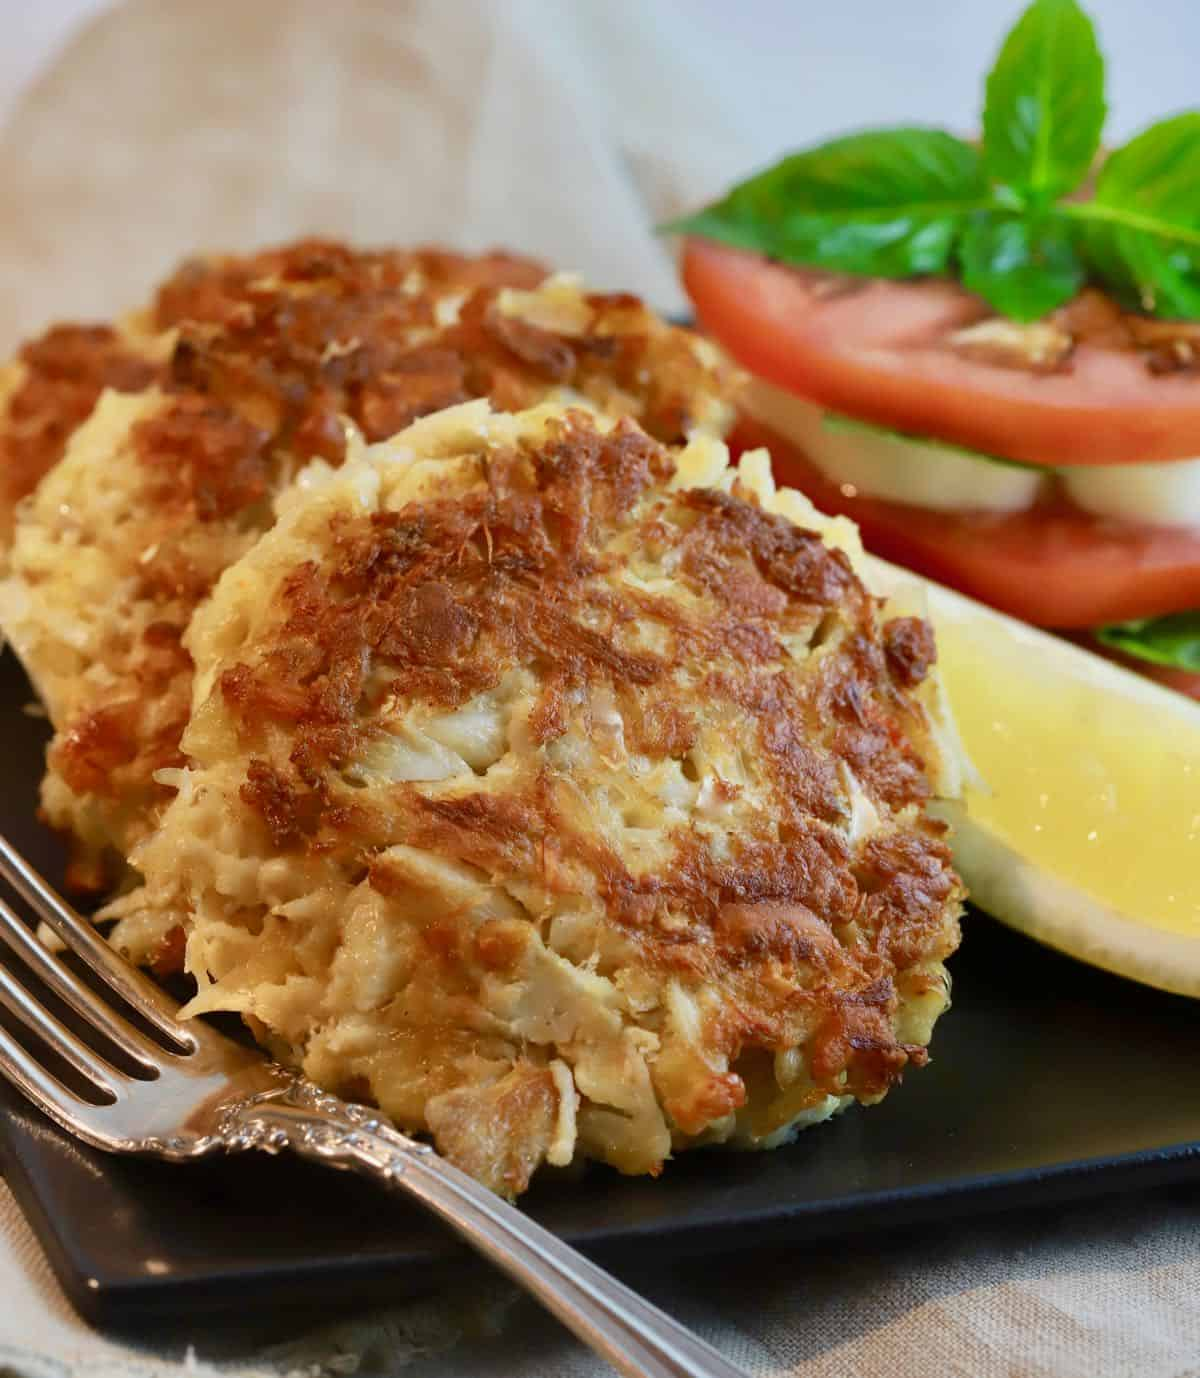 Three crab cakes on a black plate with sliced tomatoes.